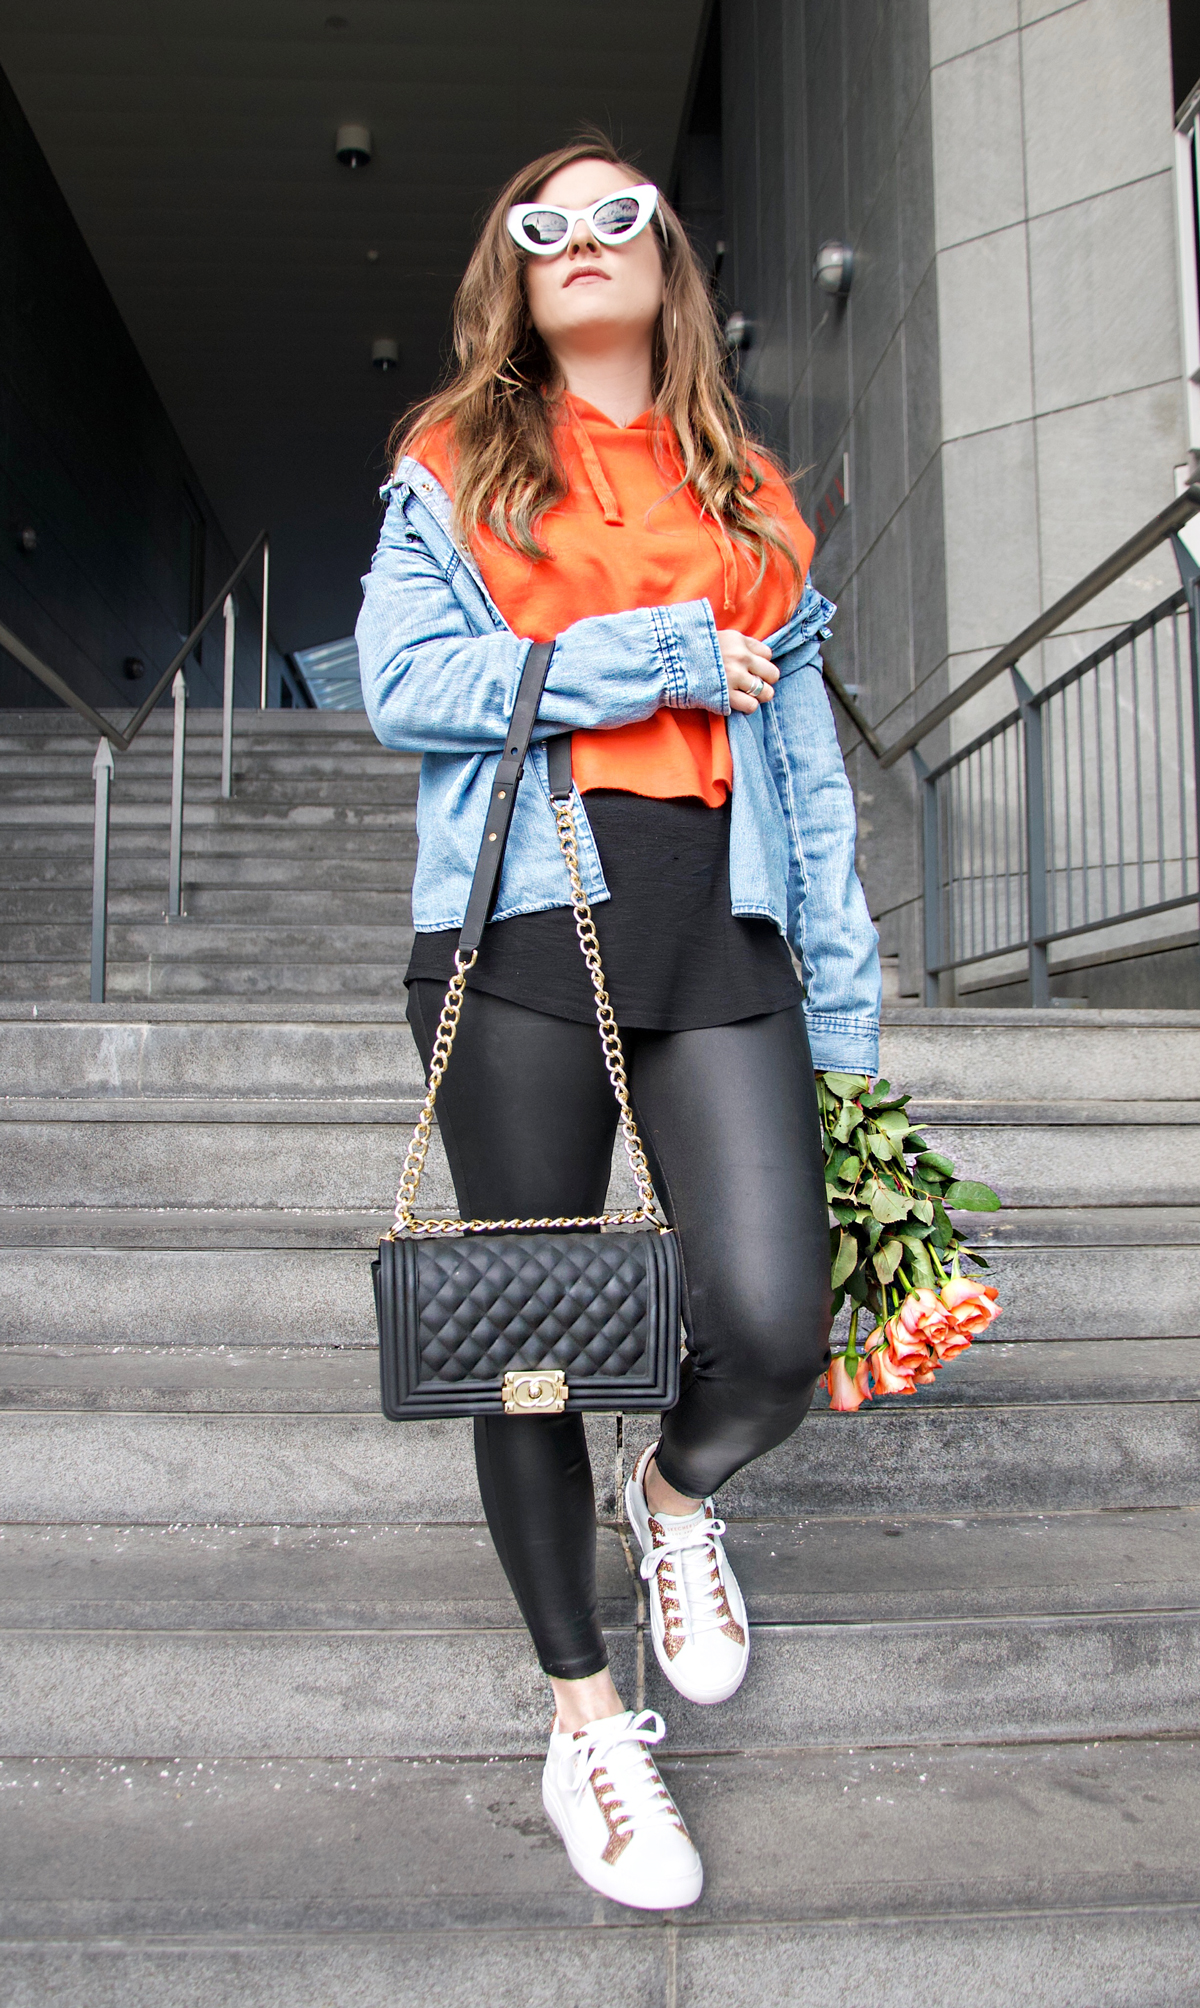 Andrea Steiner, fashion blogger from Lucerne in Switzerland is wearing the new sneakers by skechers and write on her blog Strawberries 'n' Champagne about the latest trends for sneakers.